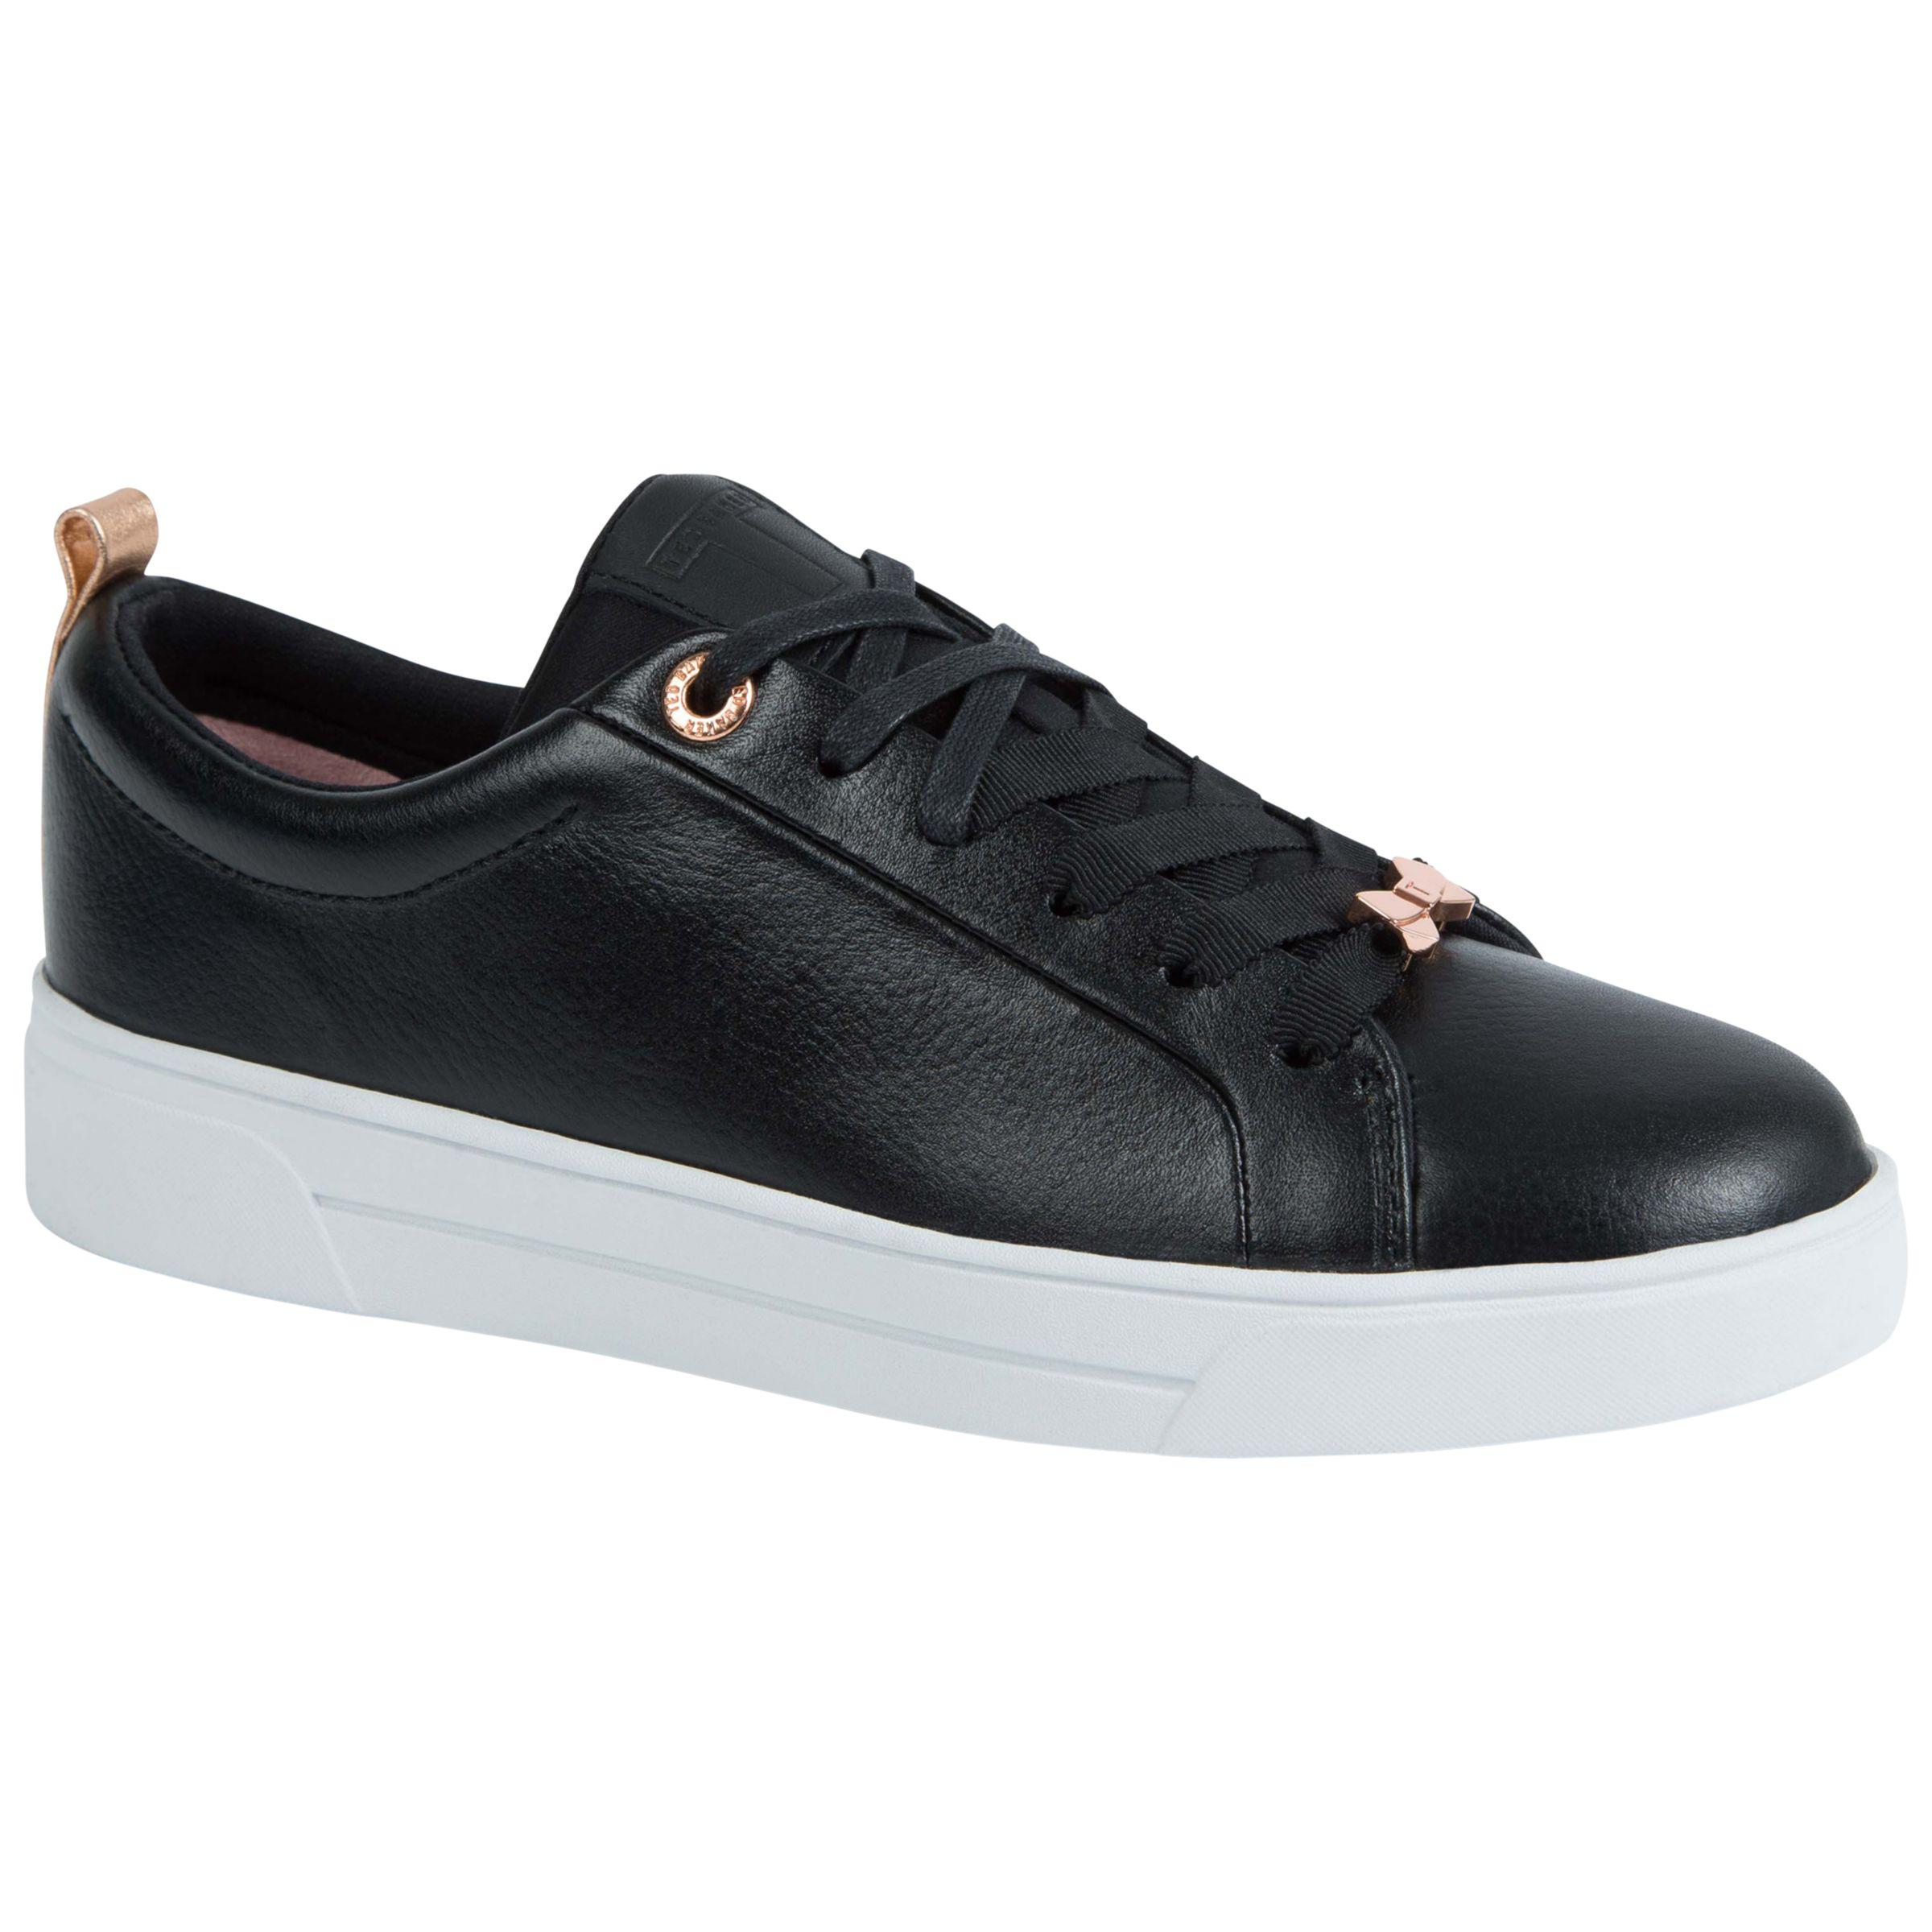 Ted Baker Leather Gielli Lace Up Trainers in Black